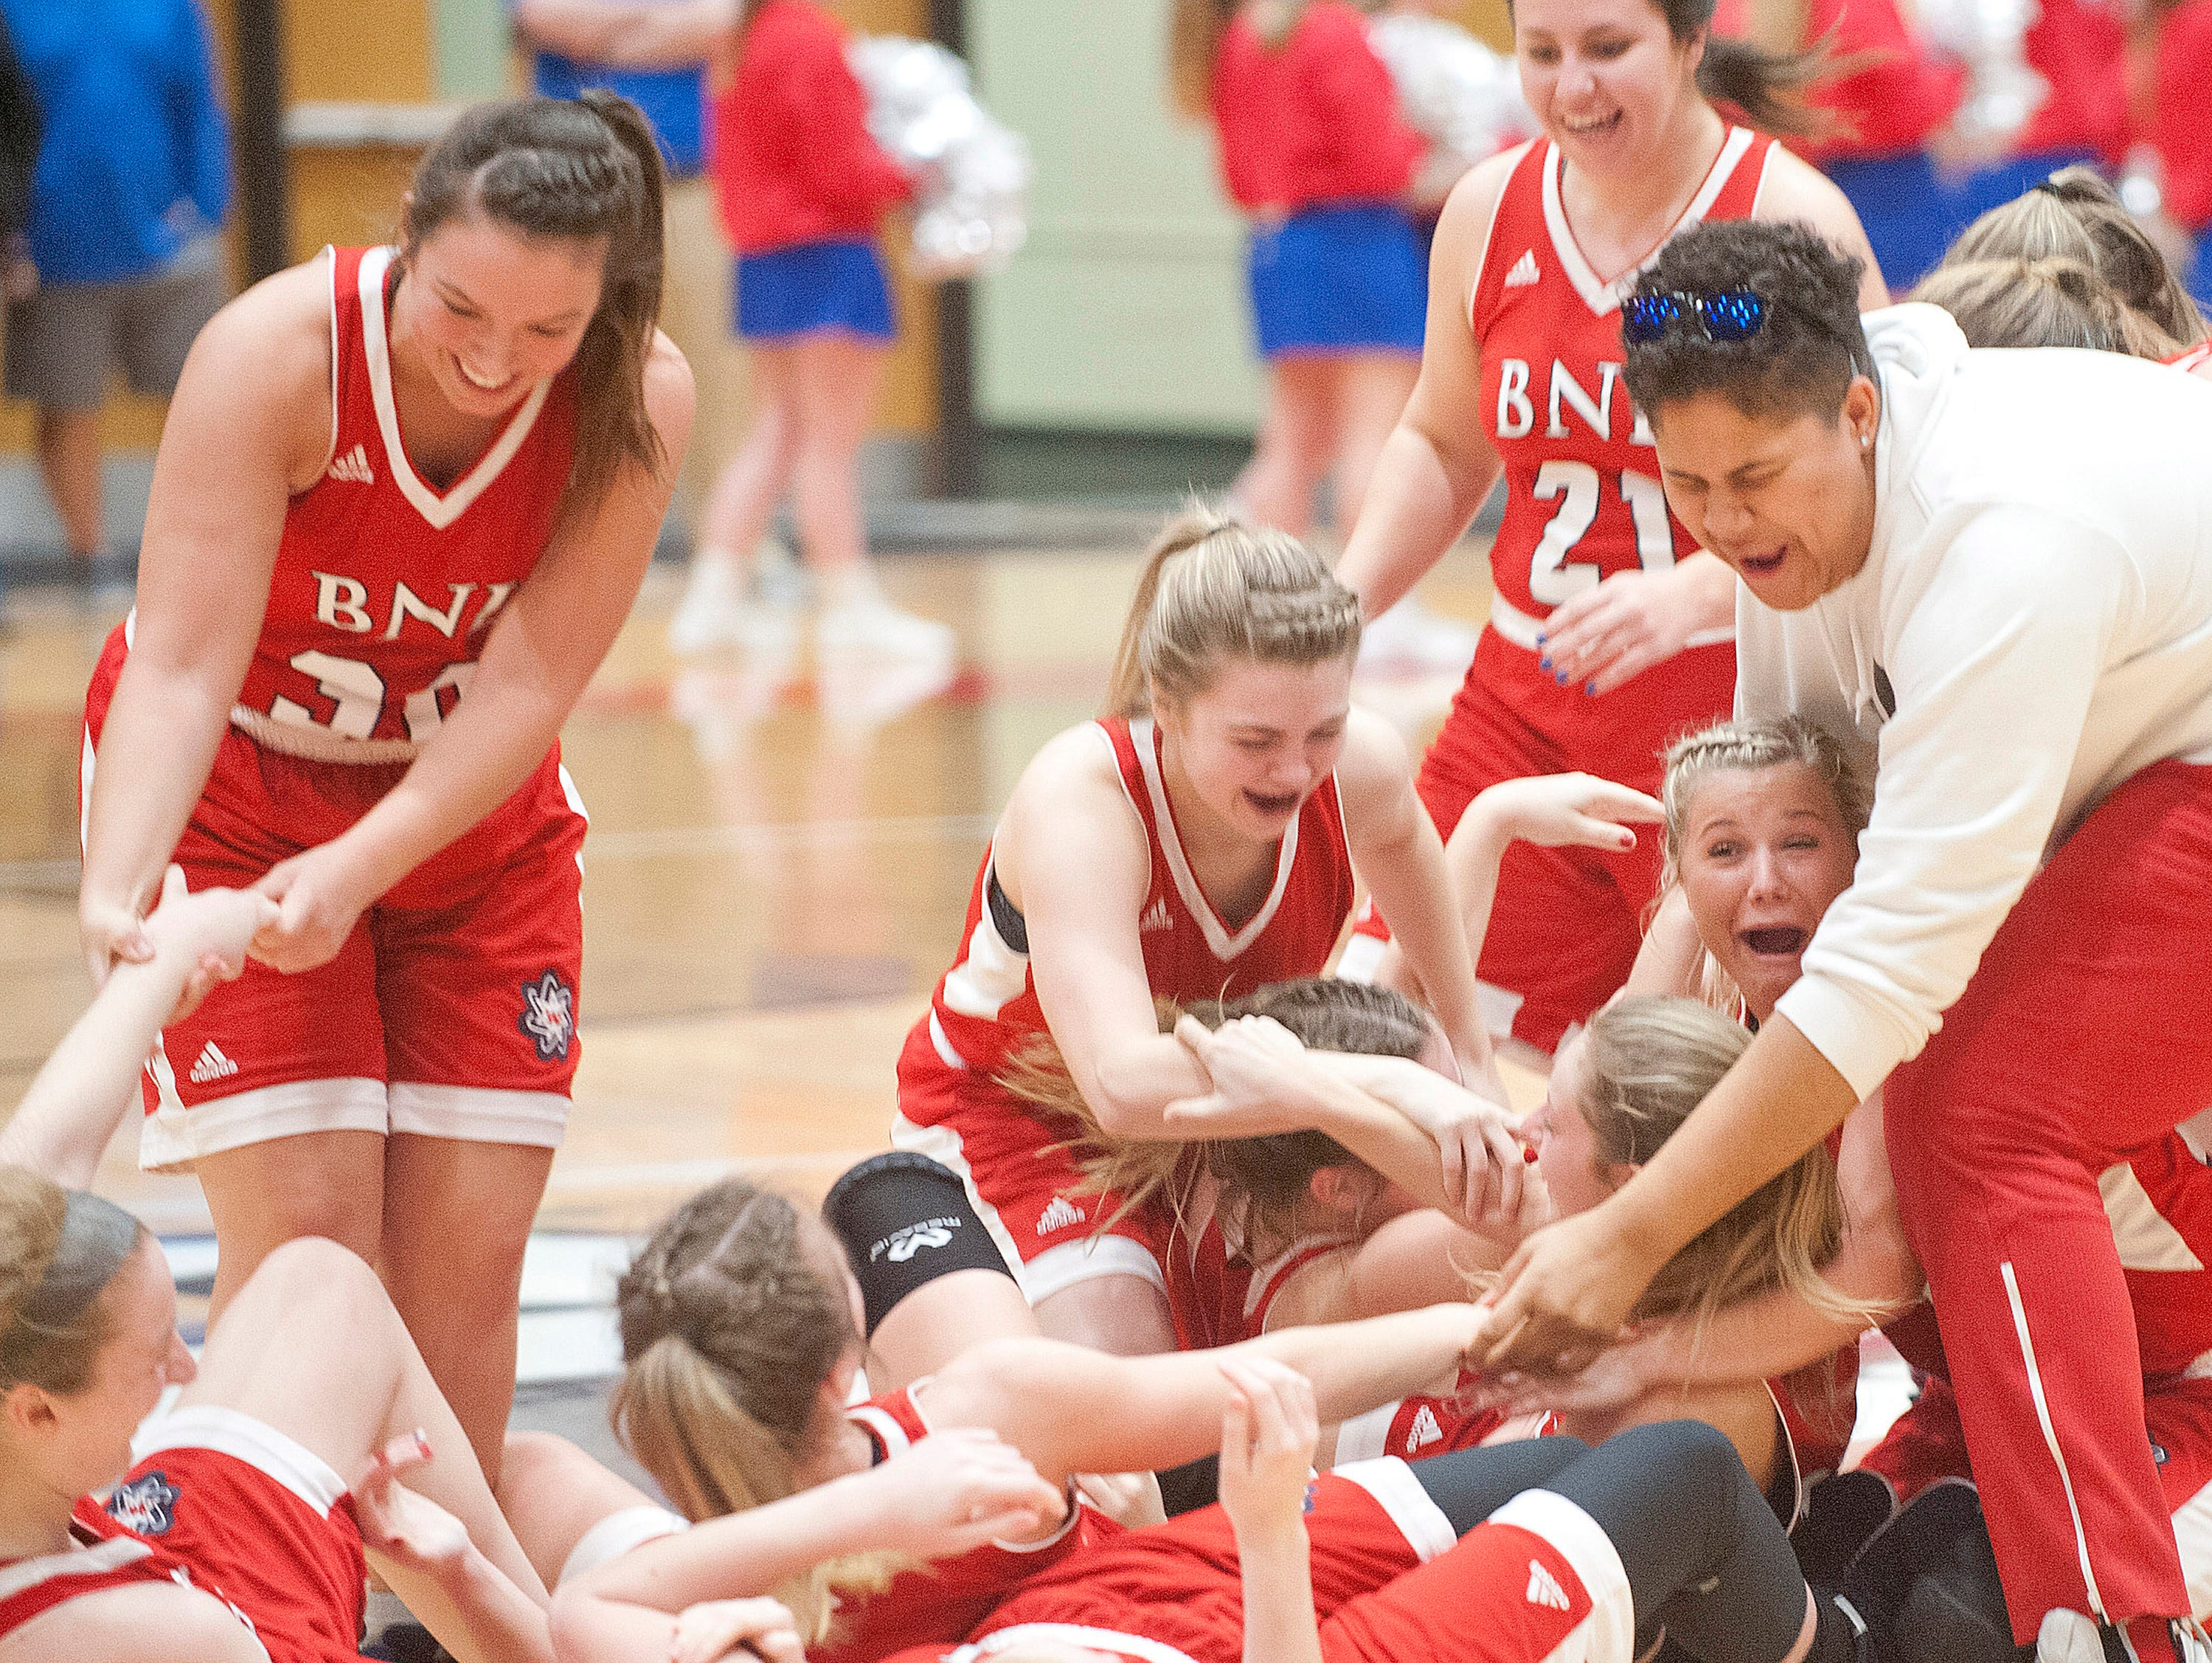 The Bedford North Lawrence girls basketball team piles onto each other moments after defeating Jennings County in the IHSAA New Albany Sectional Championship 56-34.05 February 2019